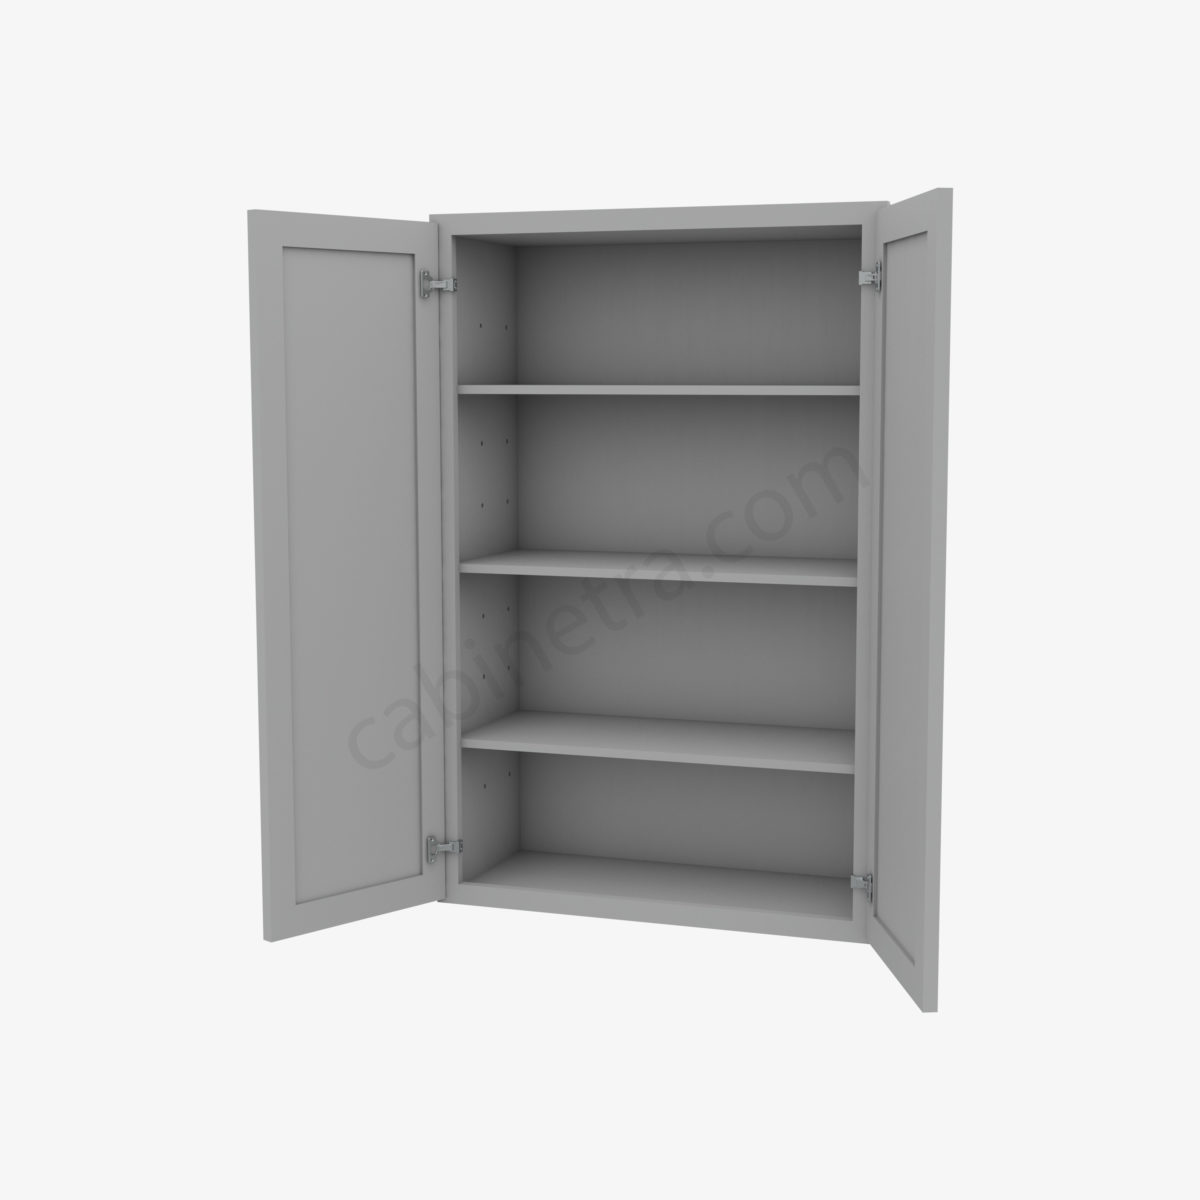 AB W2742B 5 Forevermark Lait Gray Shaker Cabinetra scaled